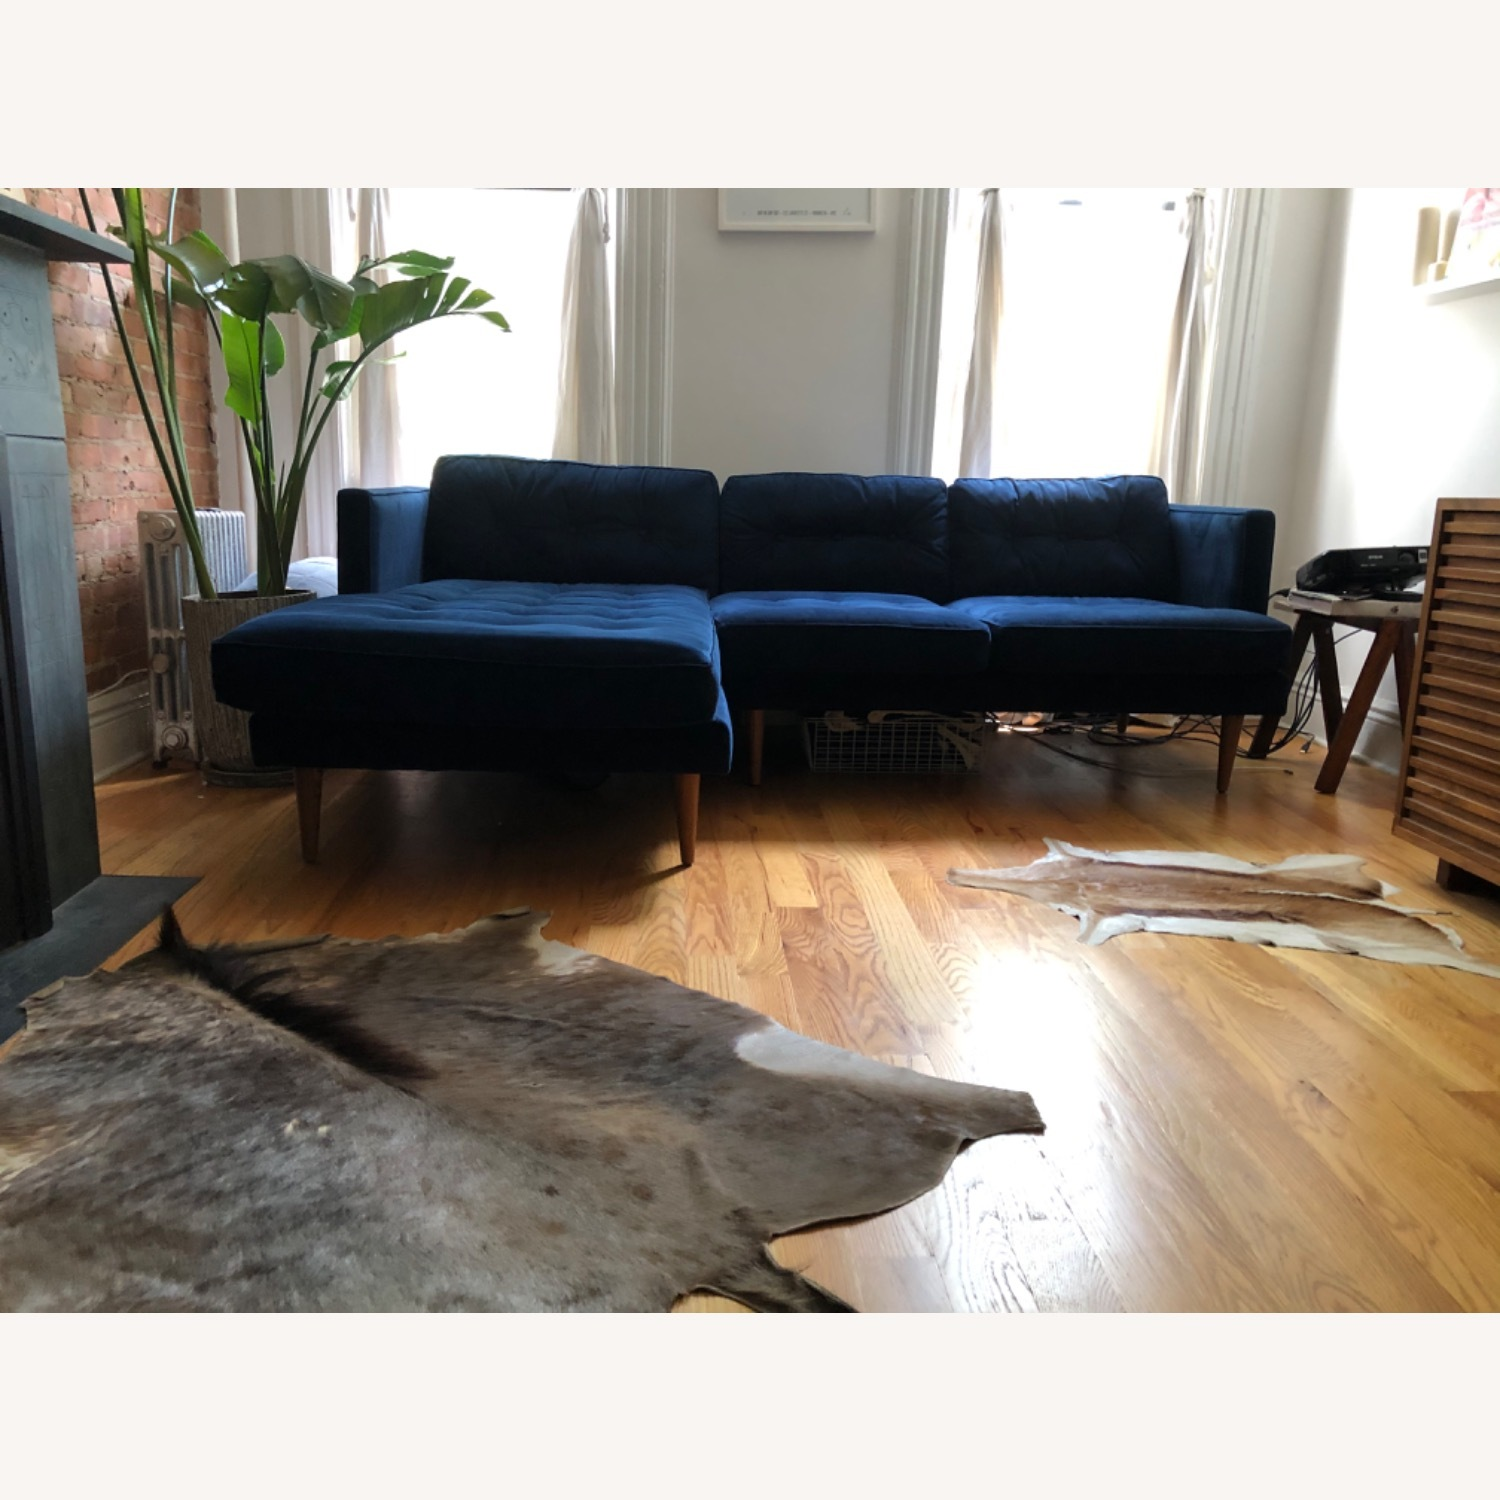 West Elm Like New Chaise Sectional - image-3